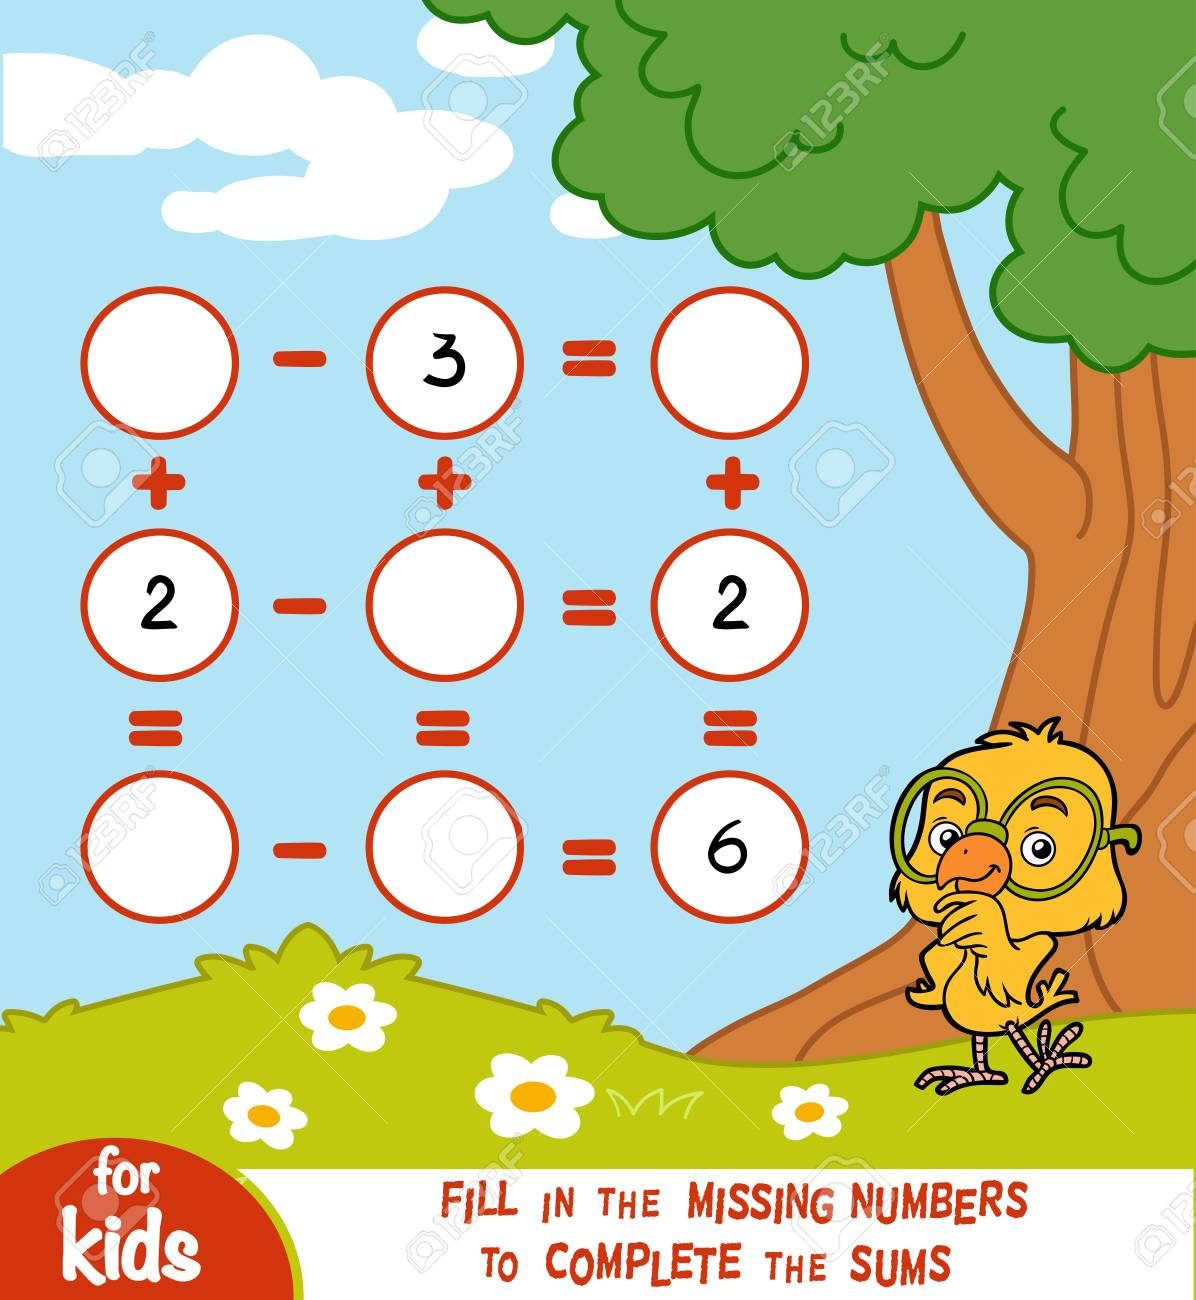 Counting Game for Preschool Children. Educational a mathematical game. - 94695799